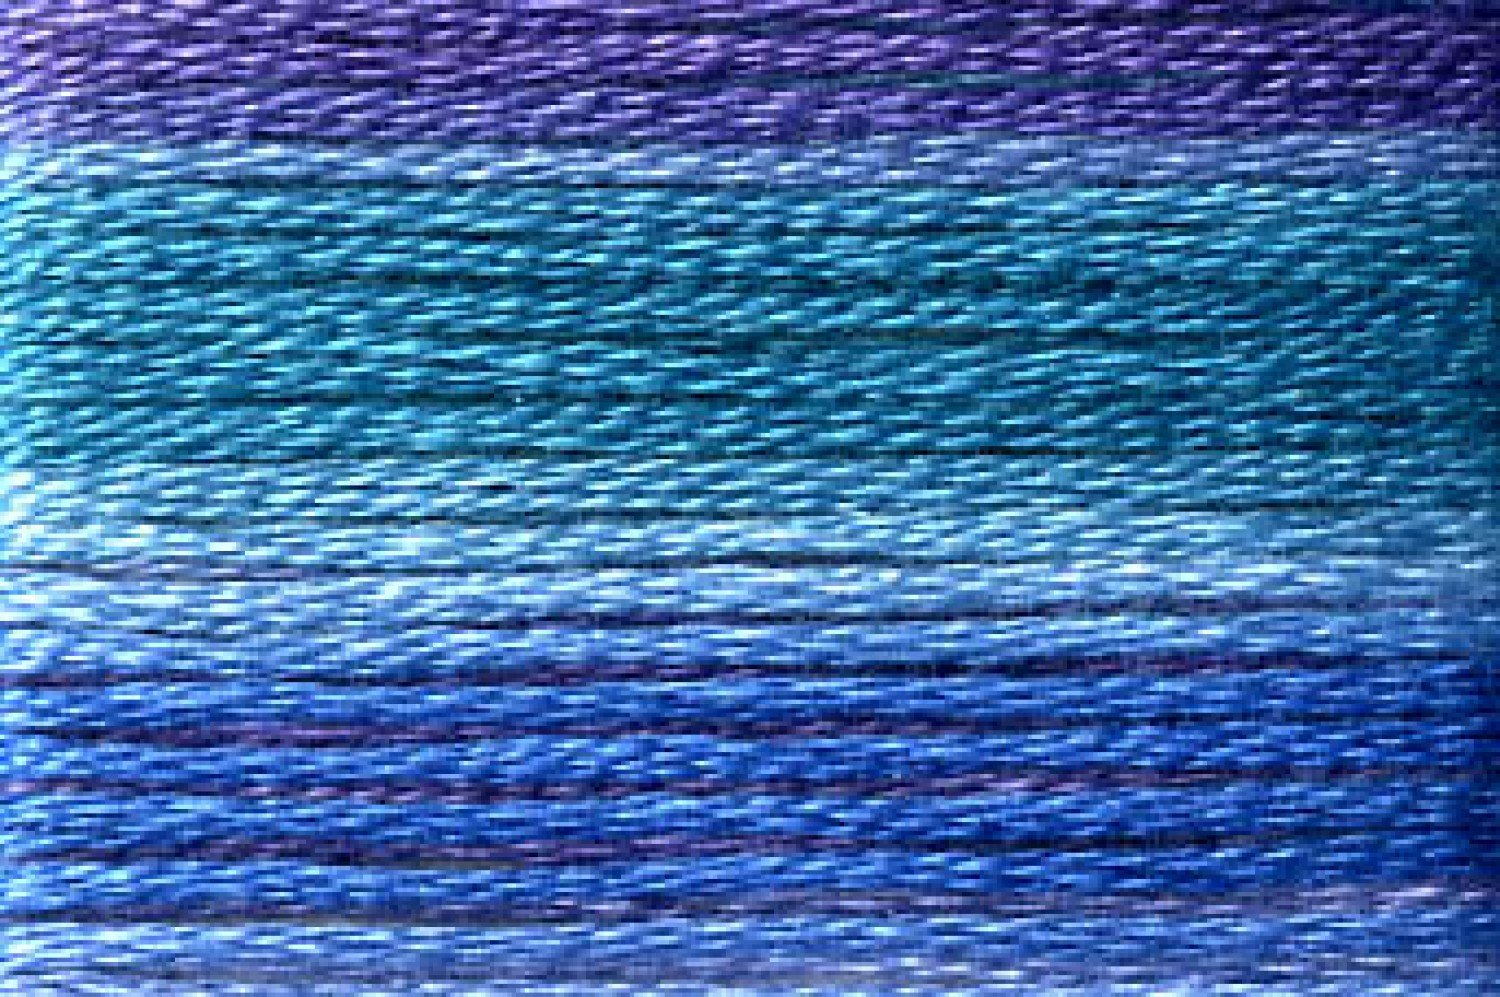 8056 Cosmo Seasons Variegated Embroidery Floss Blue/Purple